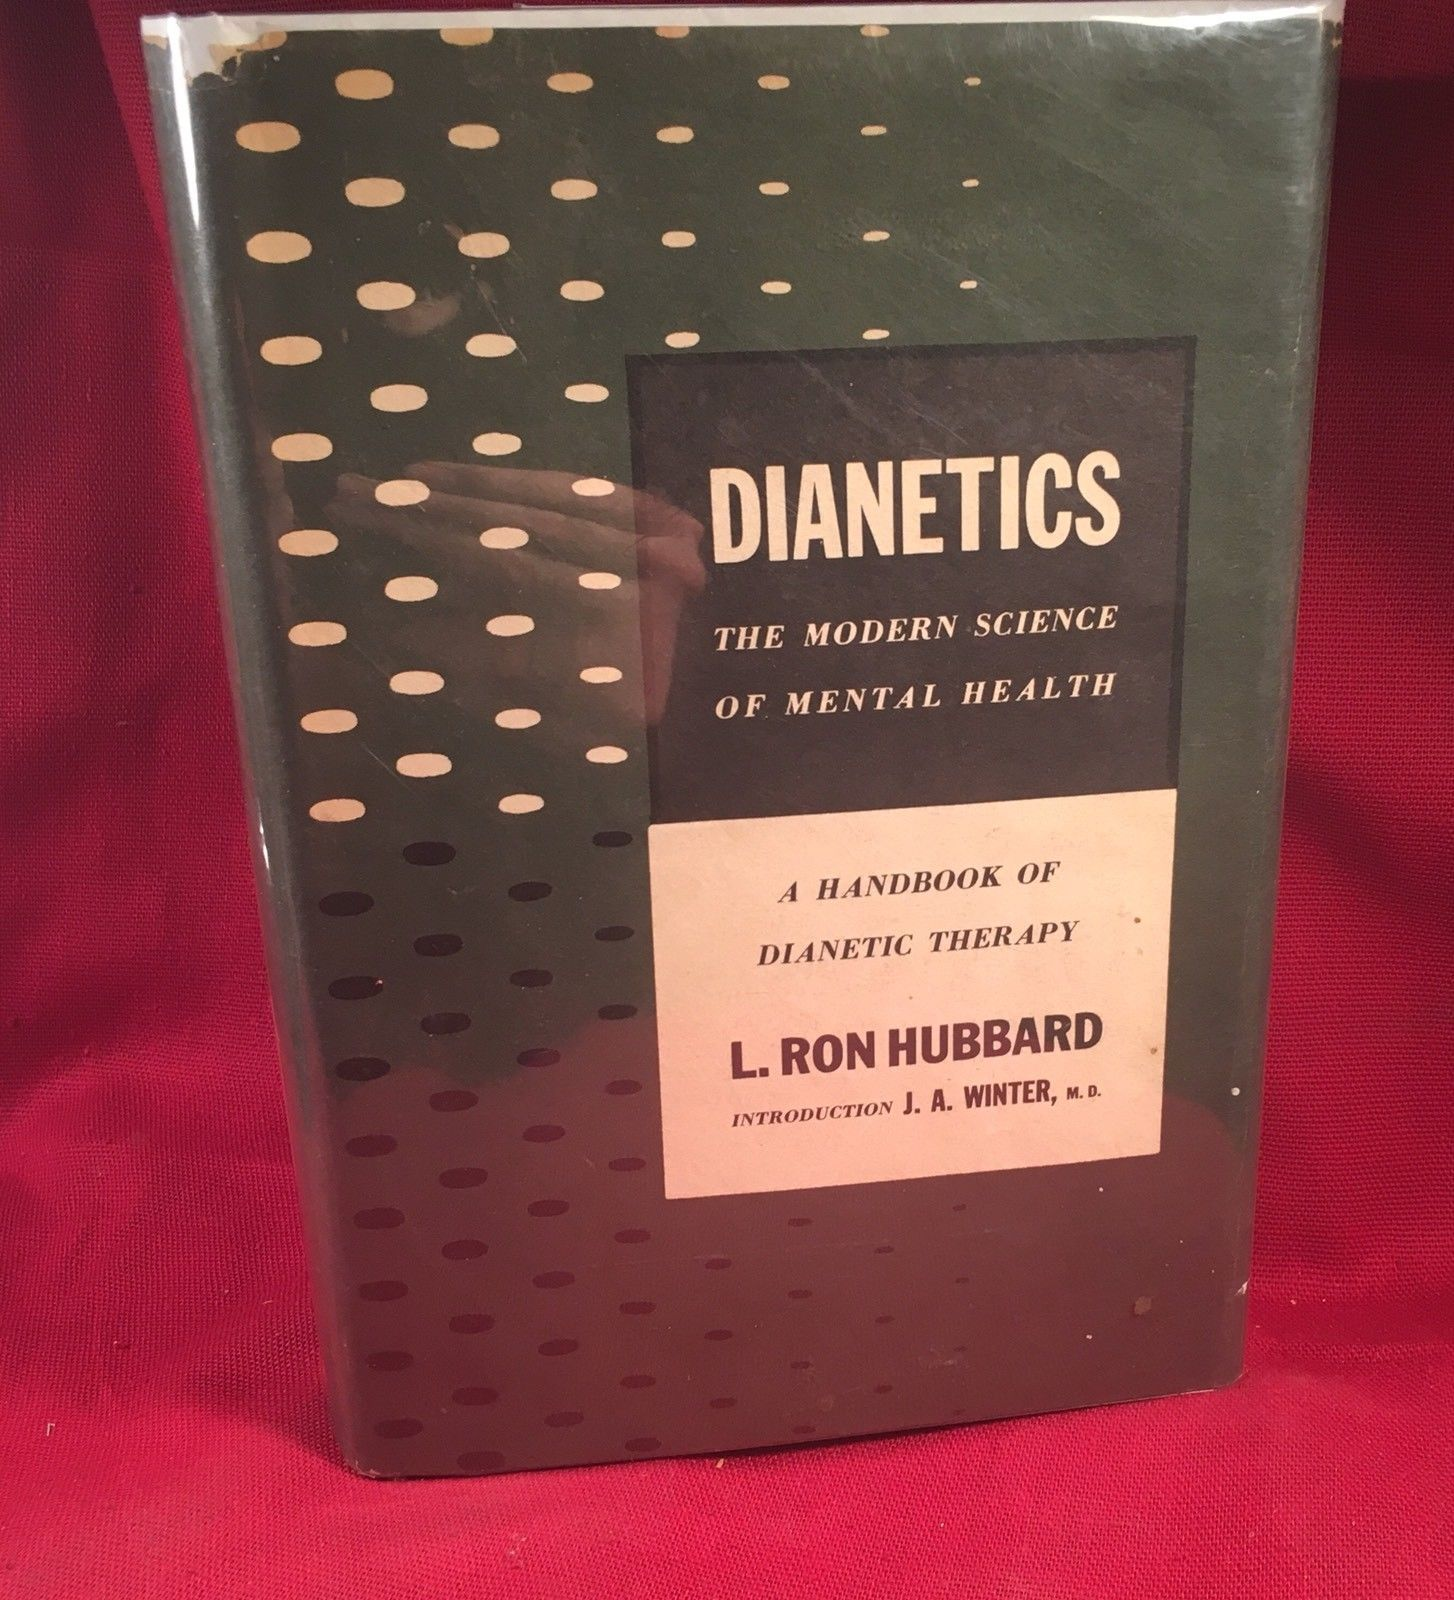 L. Ron Hubbard DIANETICS First edition First printing 1950, Dust Jacket.